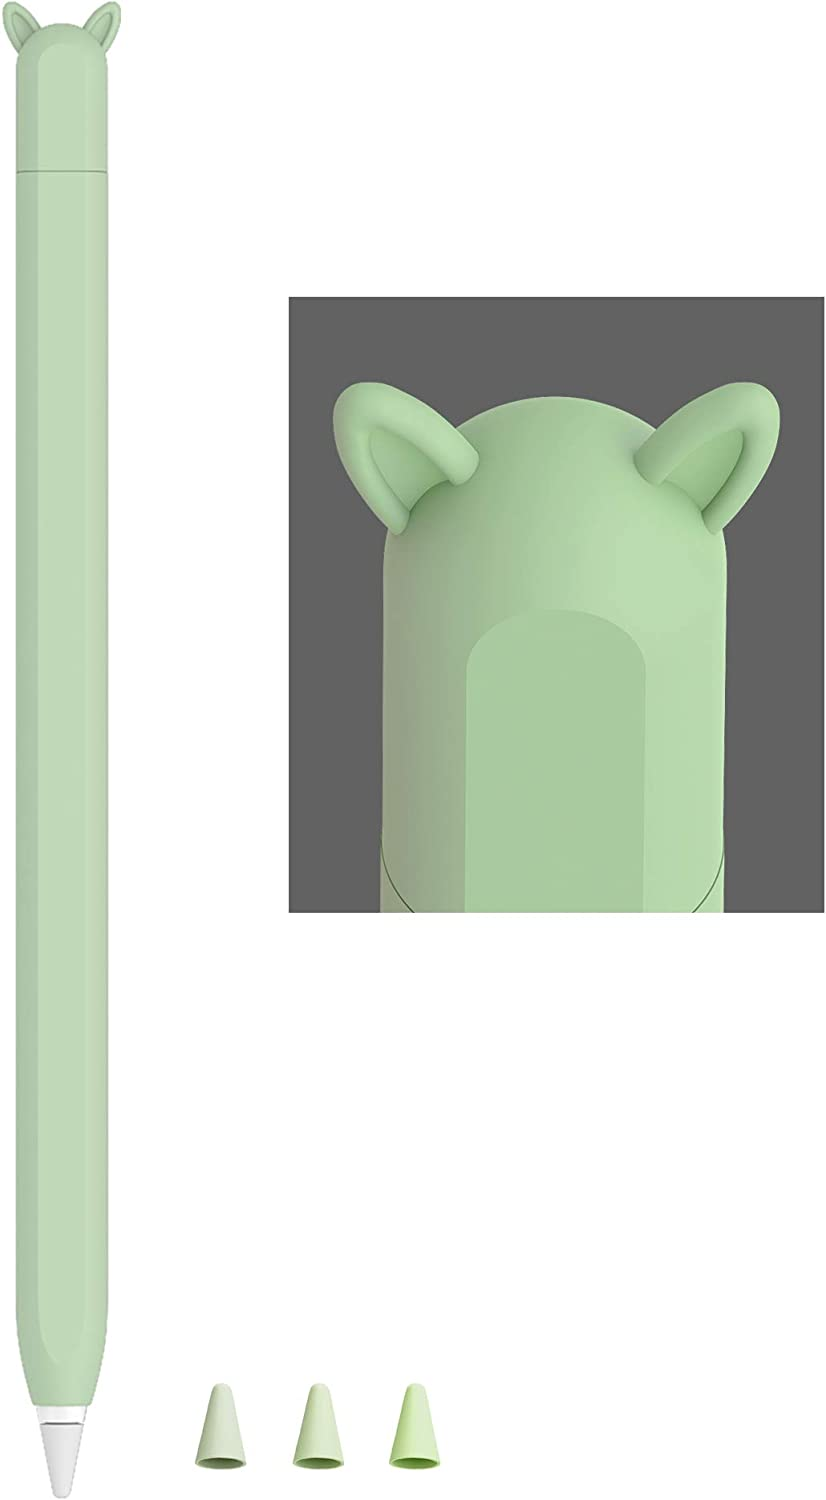 Cute Ear Case Silicone Skin Cover for Apple Pencil 2nd Generation, and Protective Nib Cover Accessories Compatible with iPad Pro 11 12.9 inch,Green